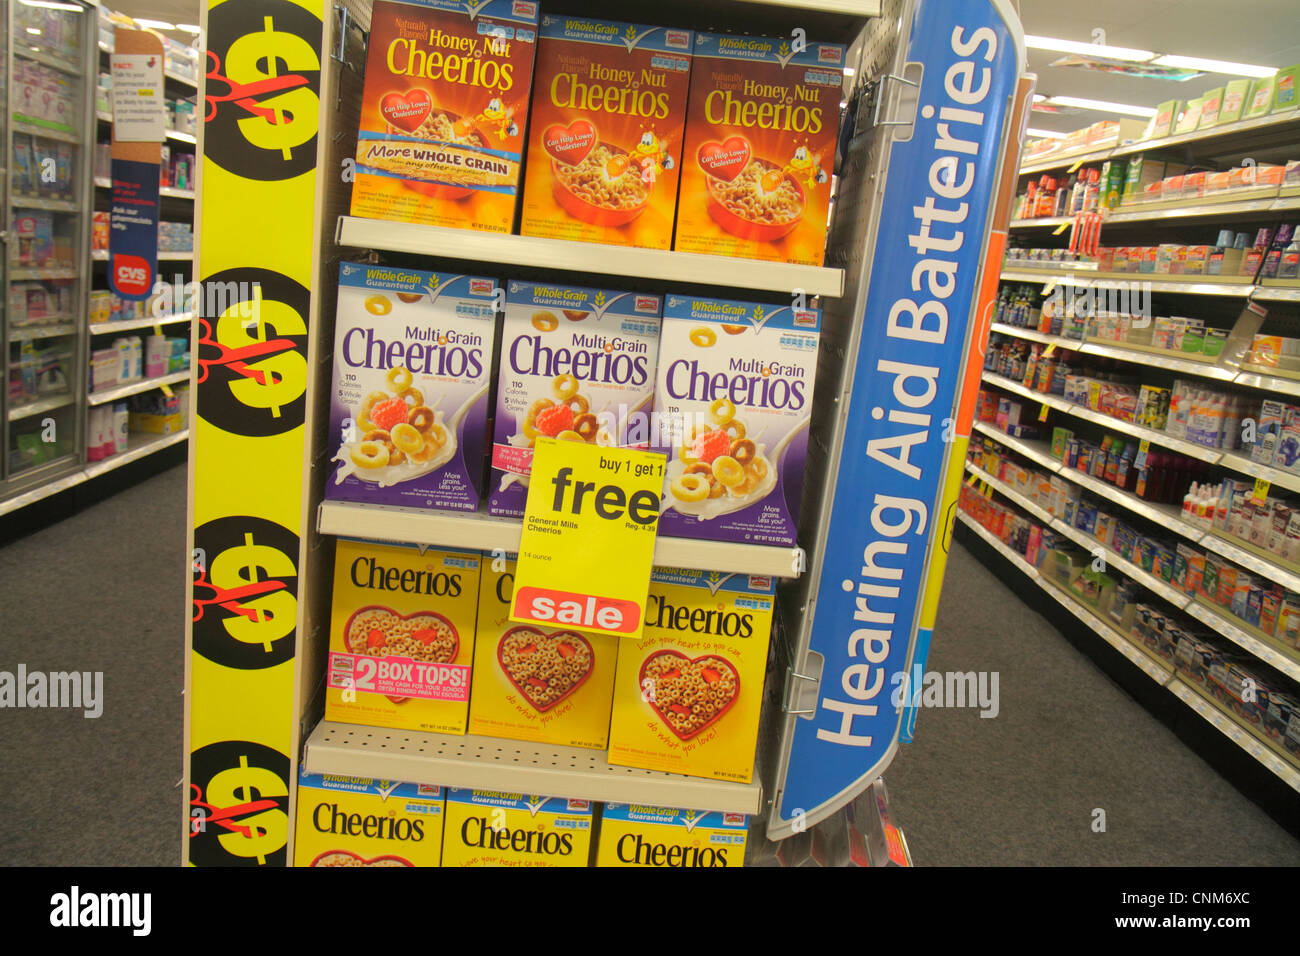 Miami Beach Florida CVS Pharmacy drugstore retail display for sale cereal General Mills Cheerios boxes - Stock Image